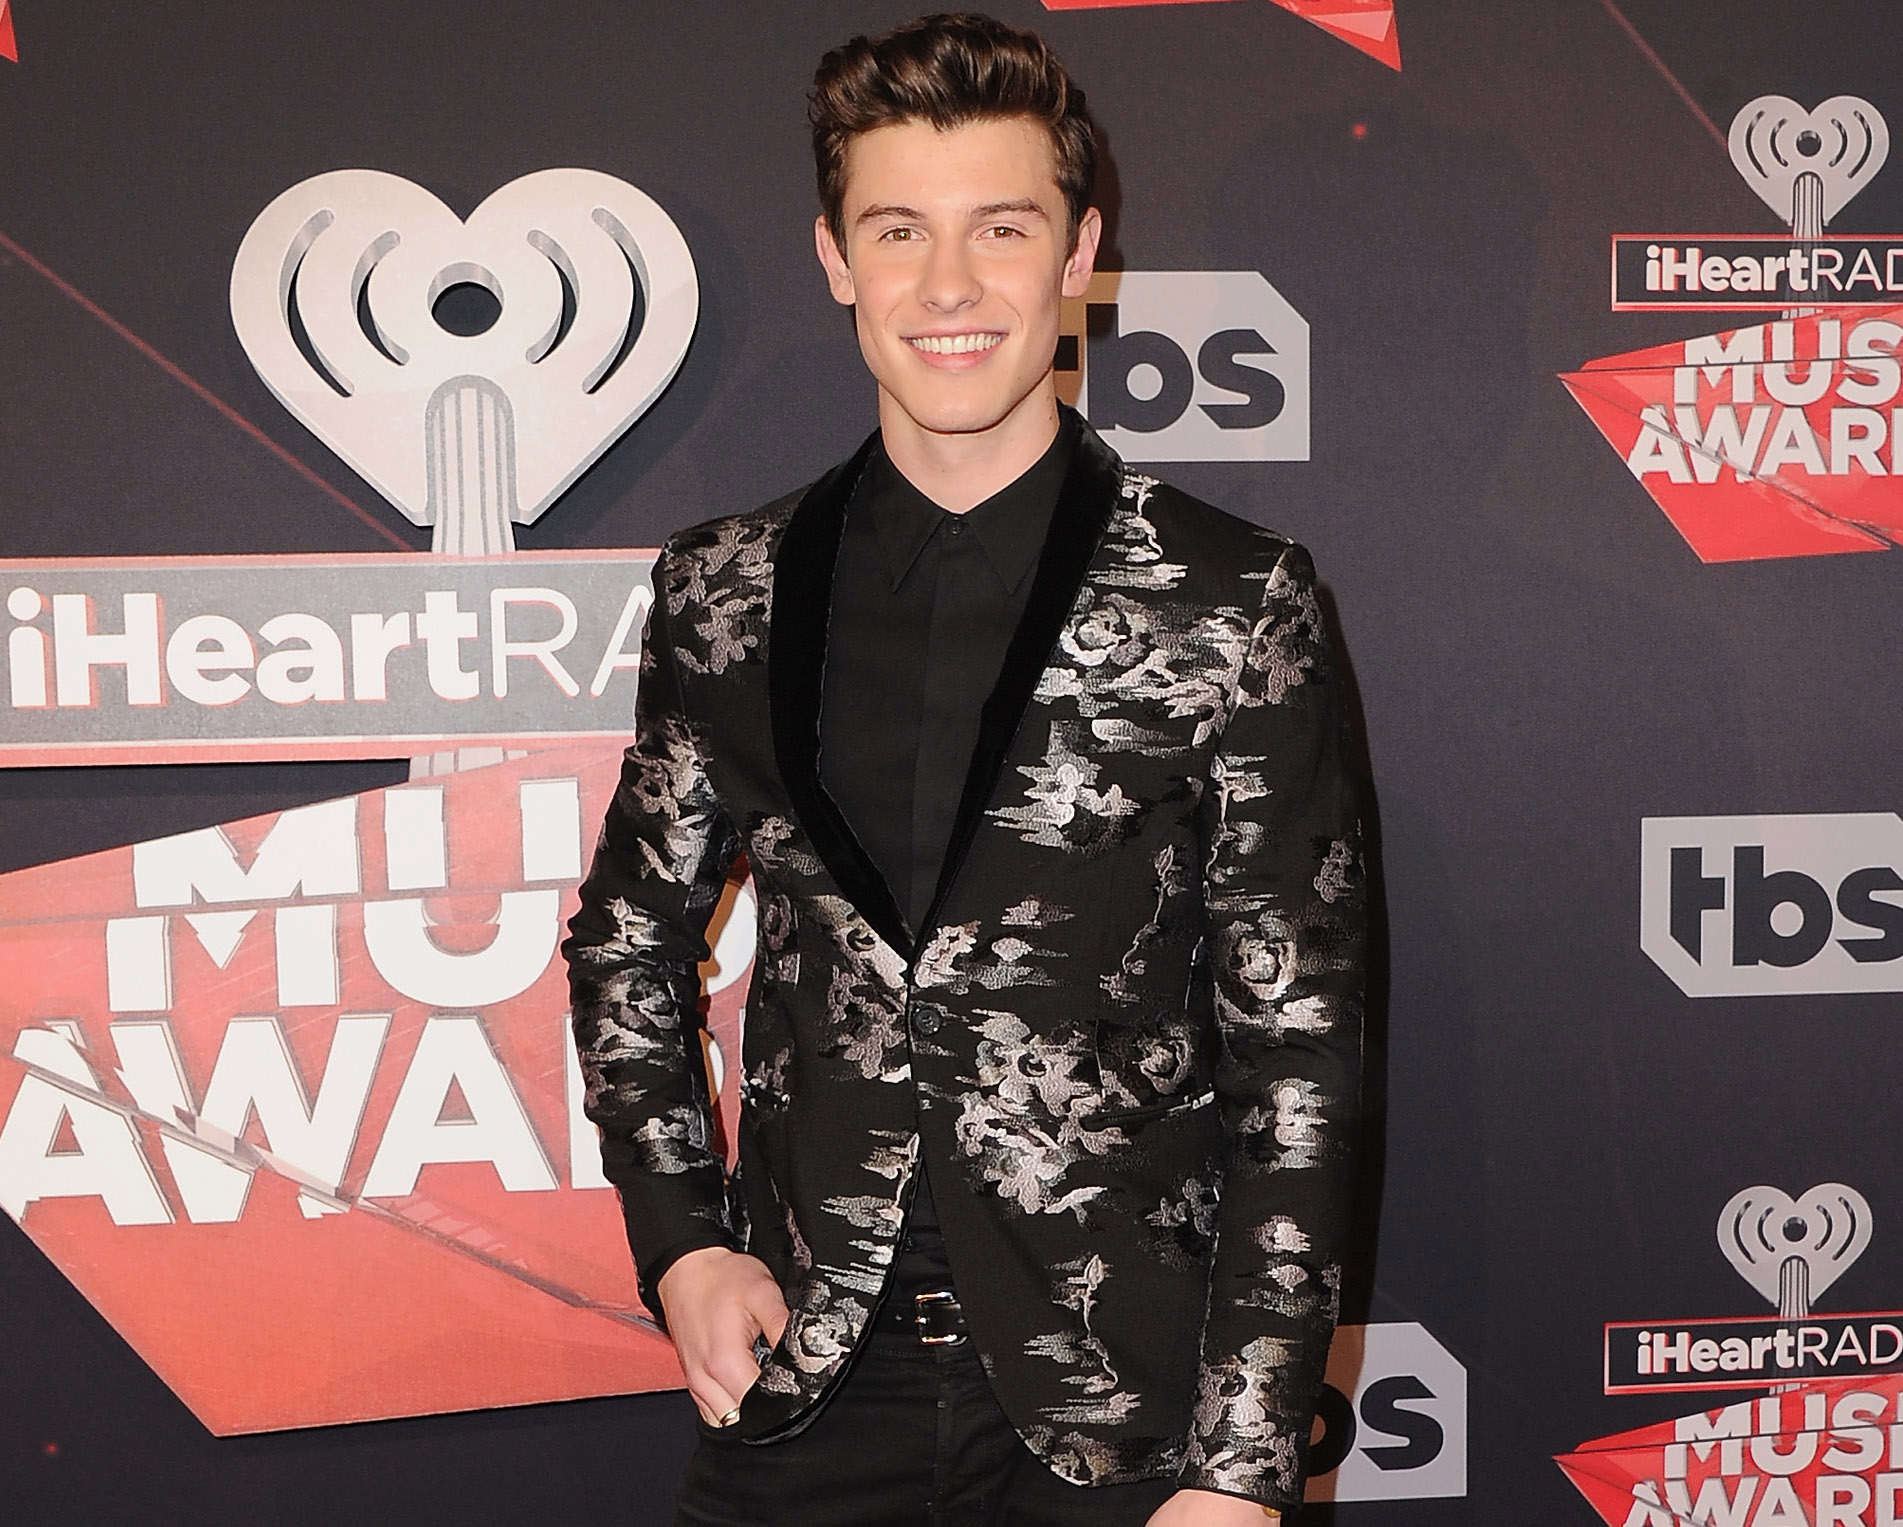 shawn-mendes-disney-channel